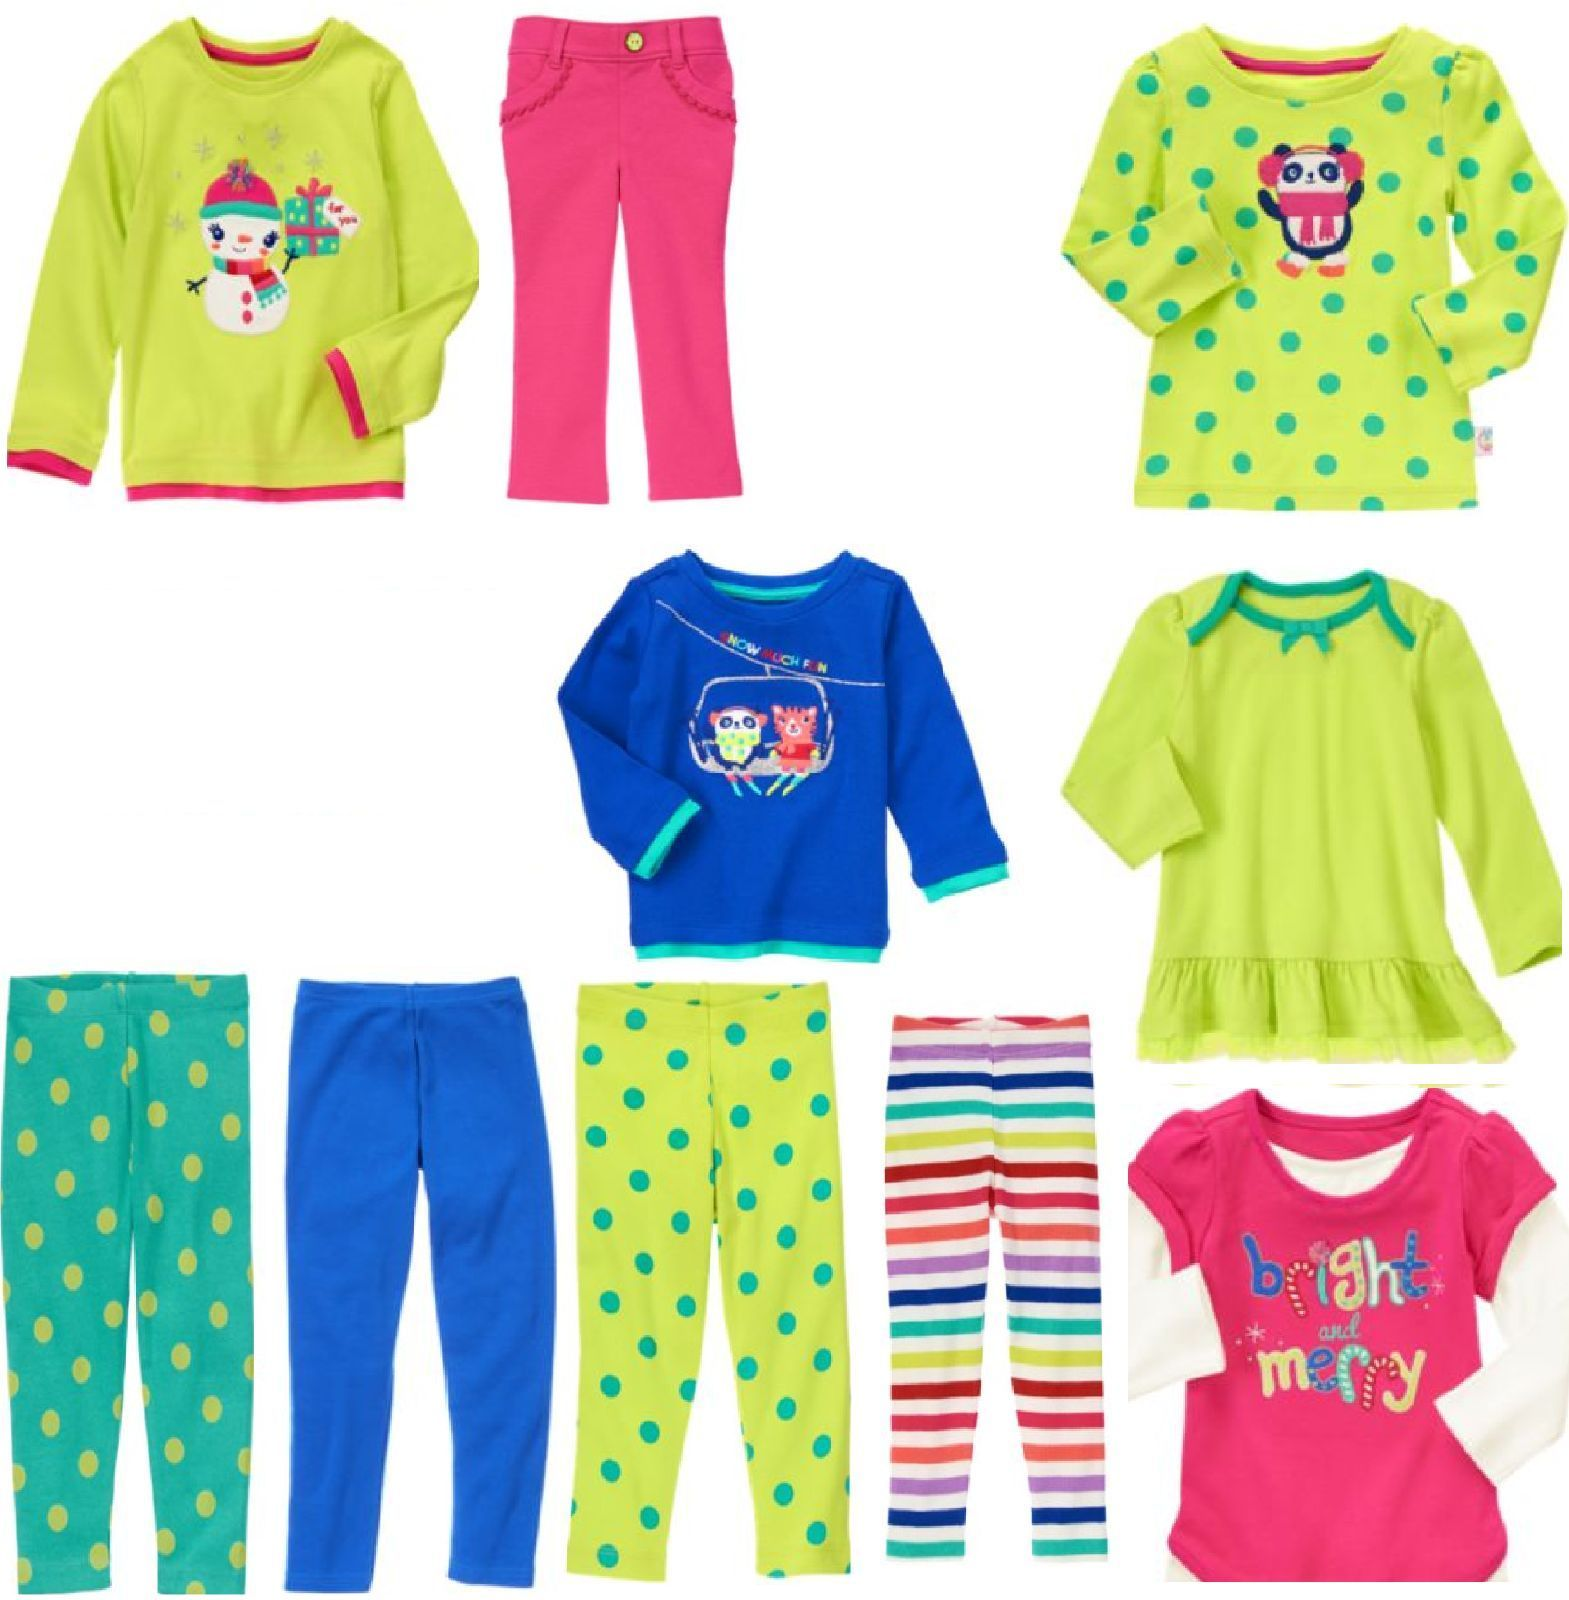 NWT GYMBOREE Girls Outfit Shirt and Leggings Size 3T